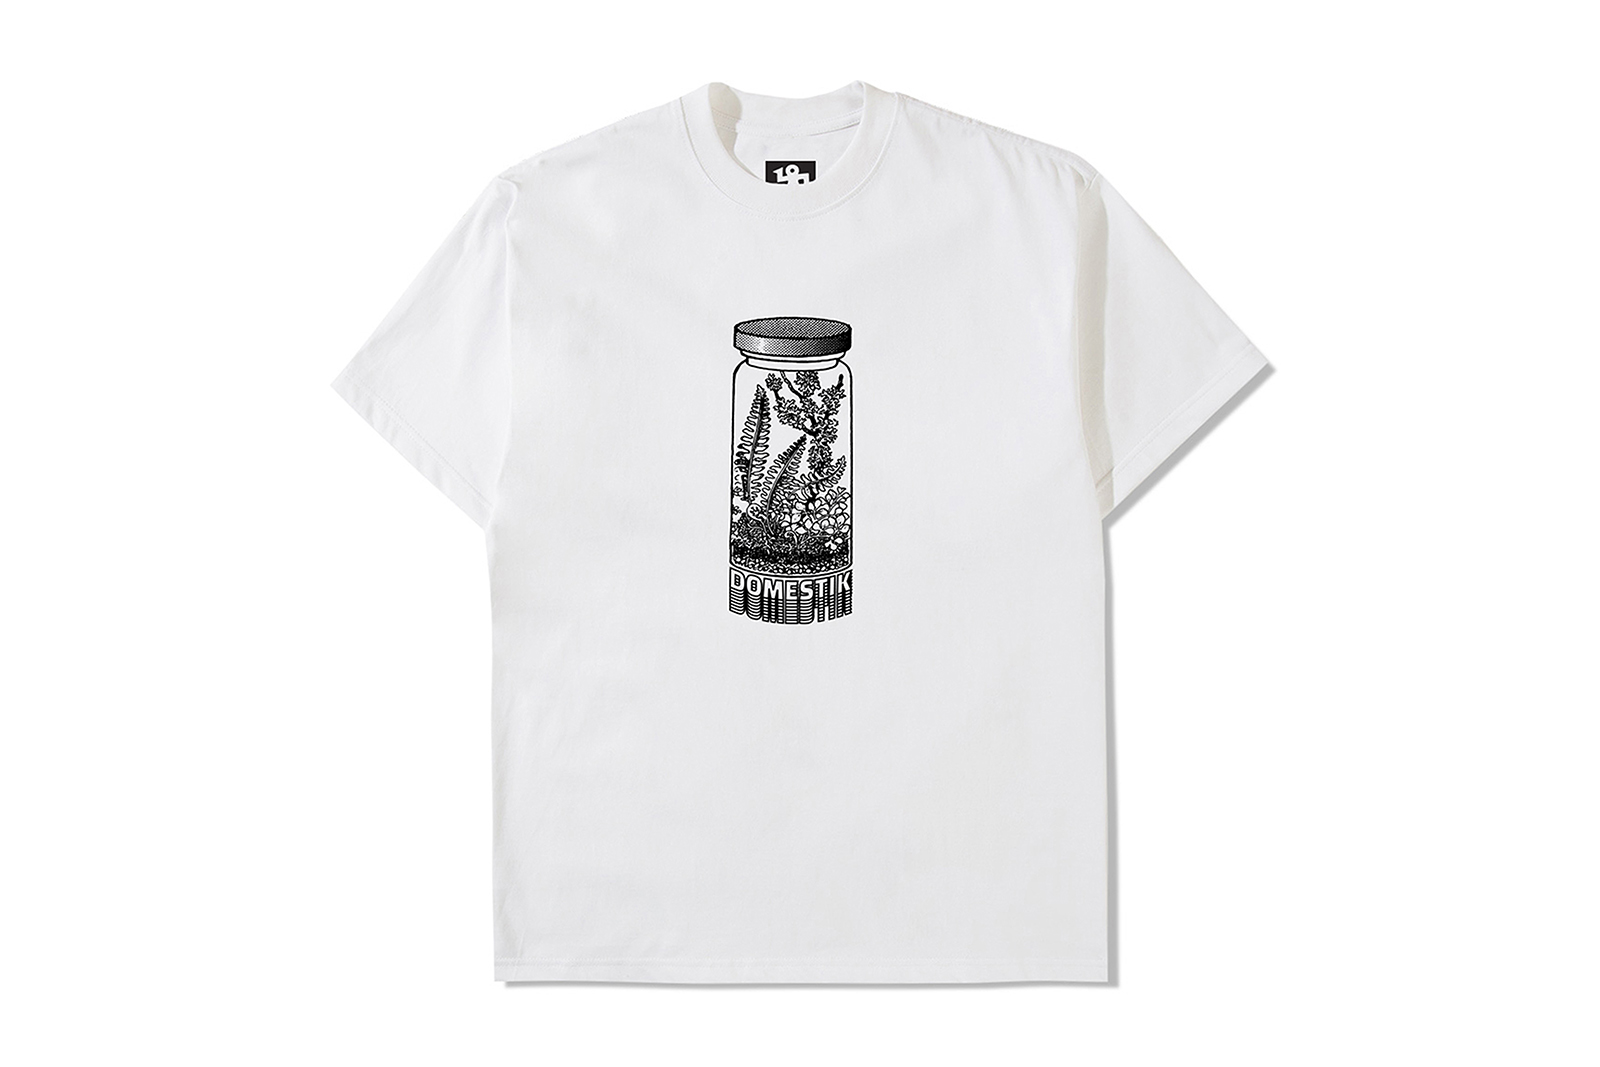 pace-of-nature-tee-white_p2